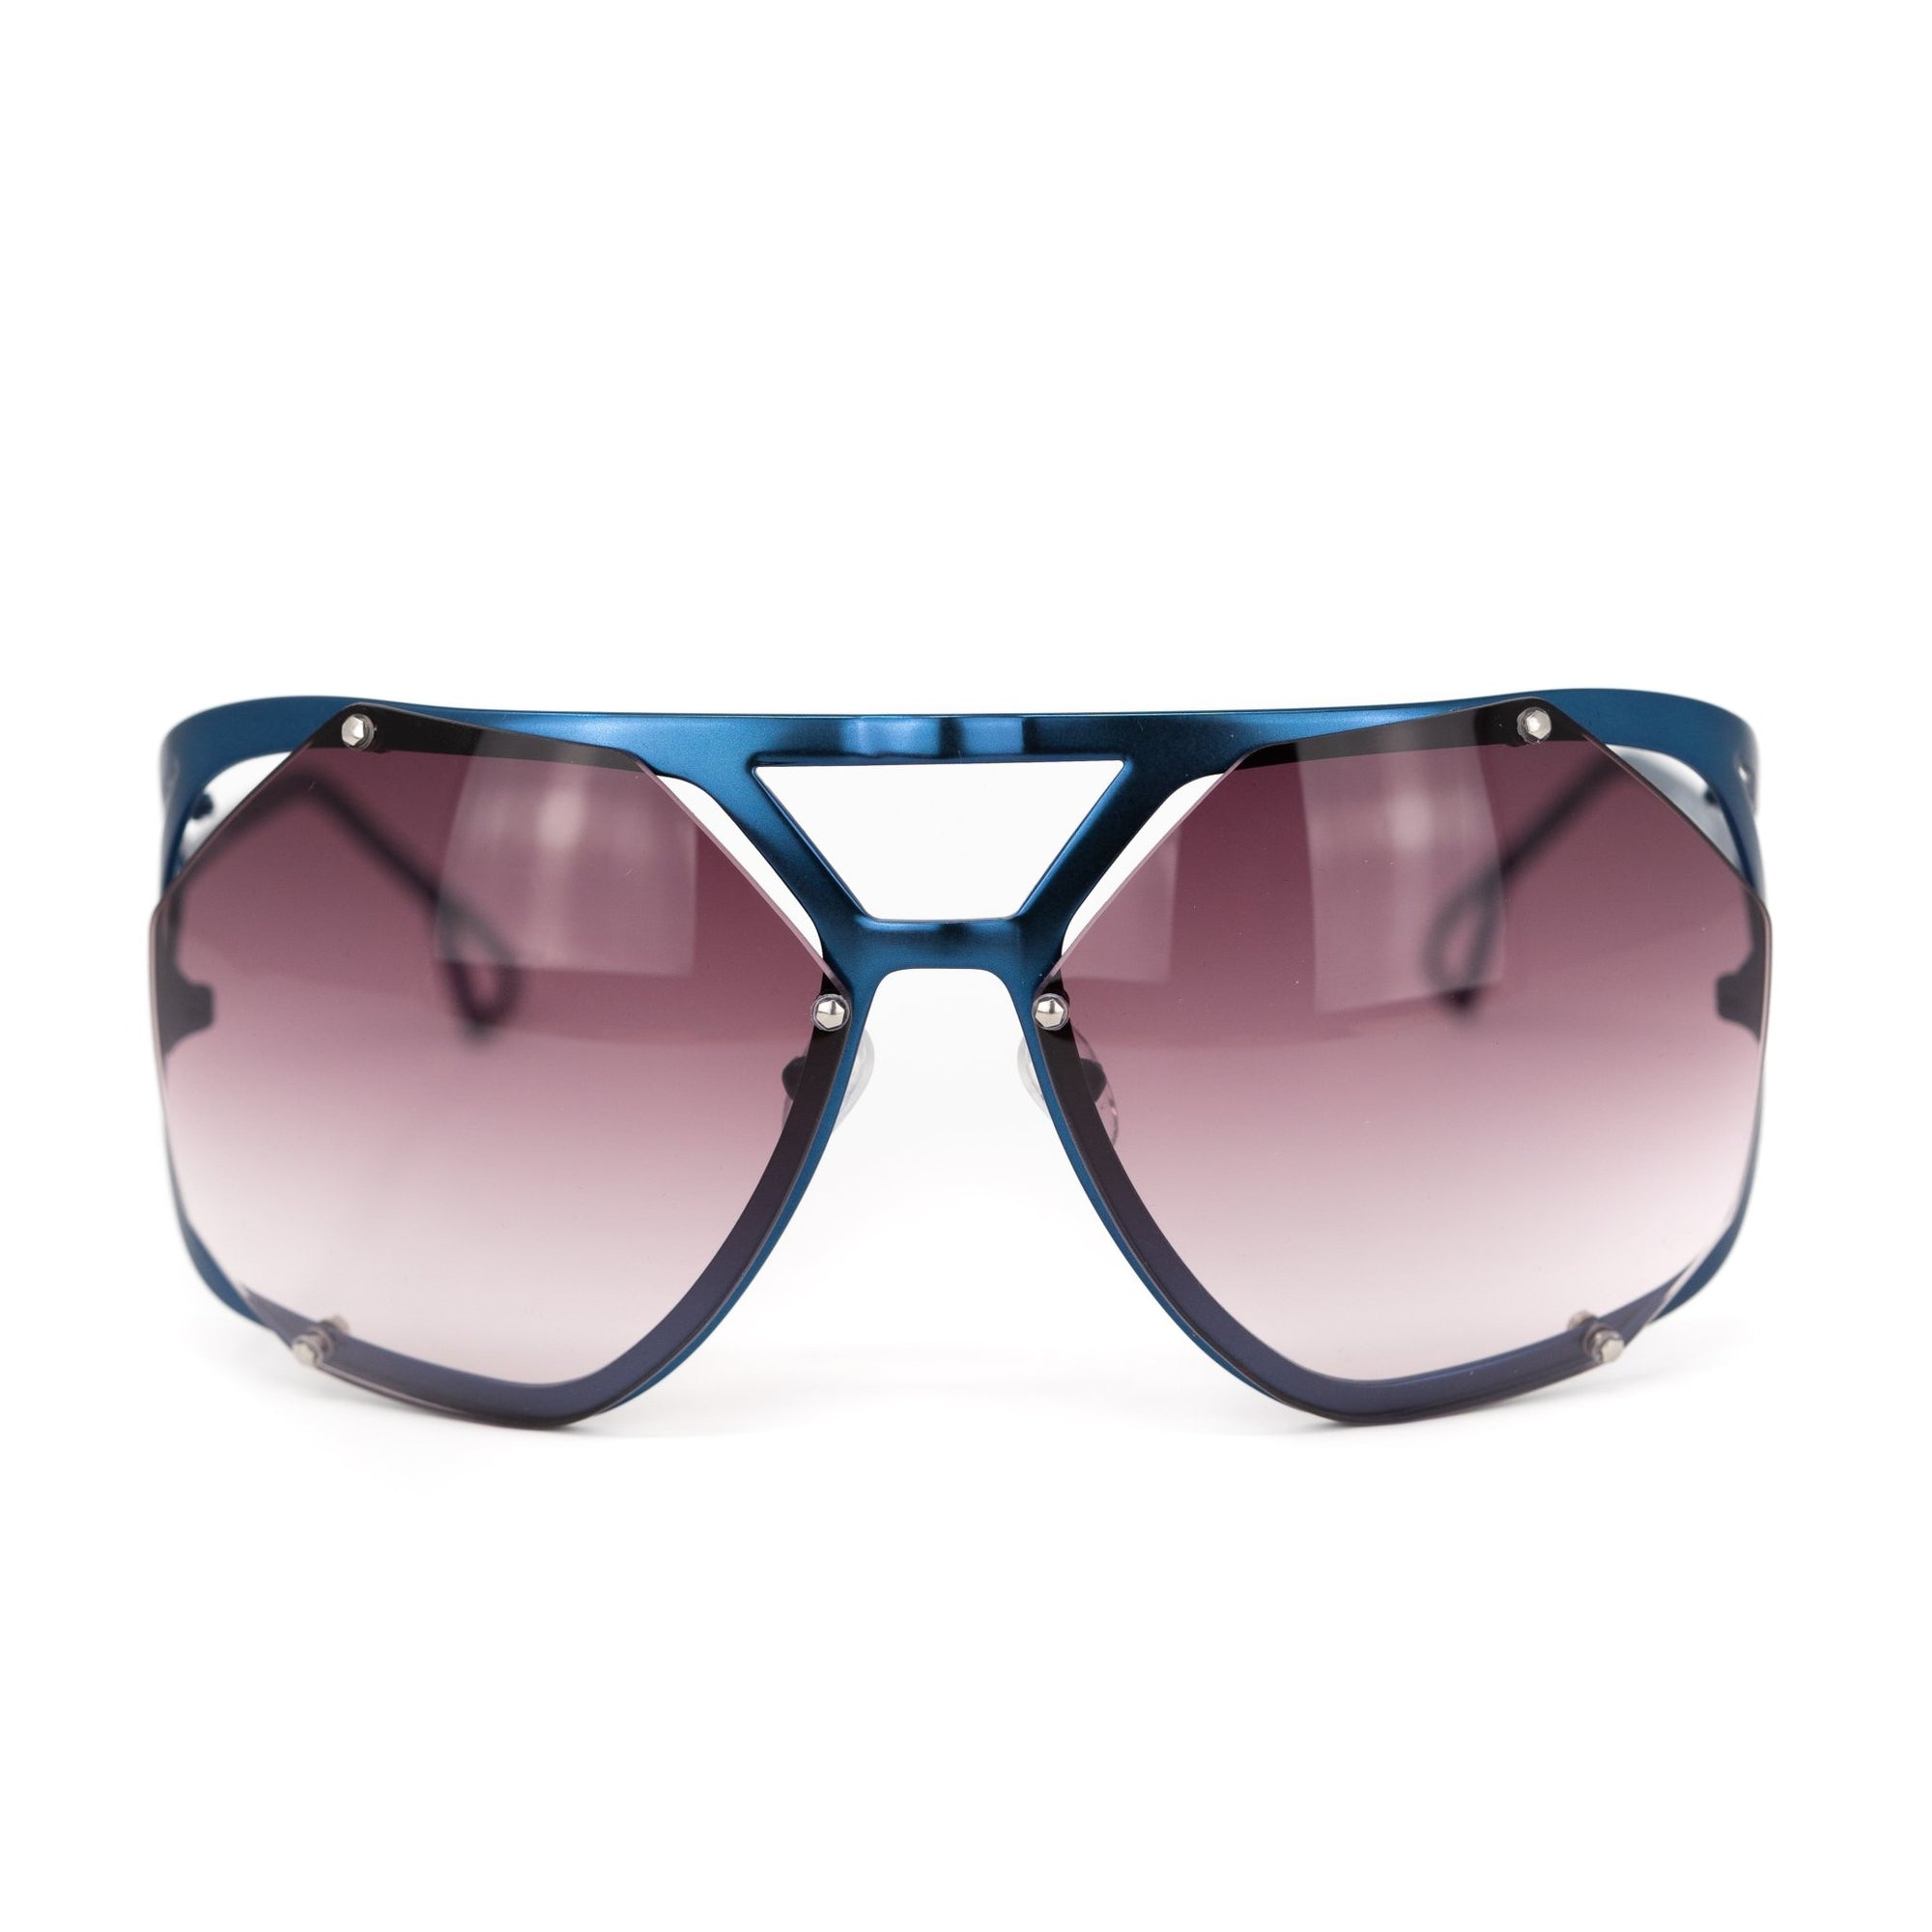 Raf Simons Sunglasses Shield Blue and Grey Lenses Category 3 - 8RAF4ADARKBLUE - Watches & Crystals